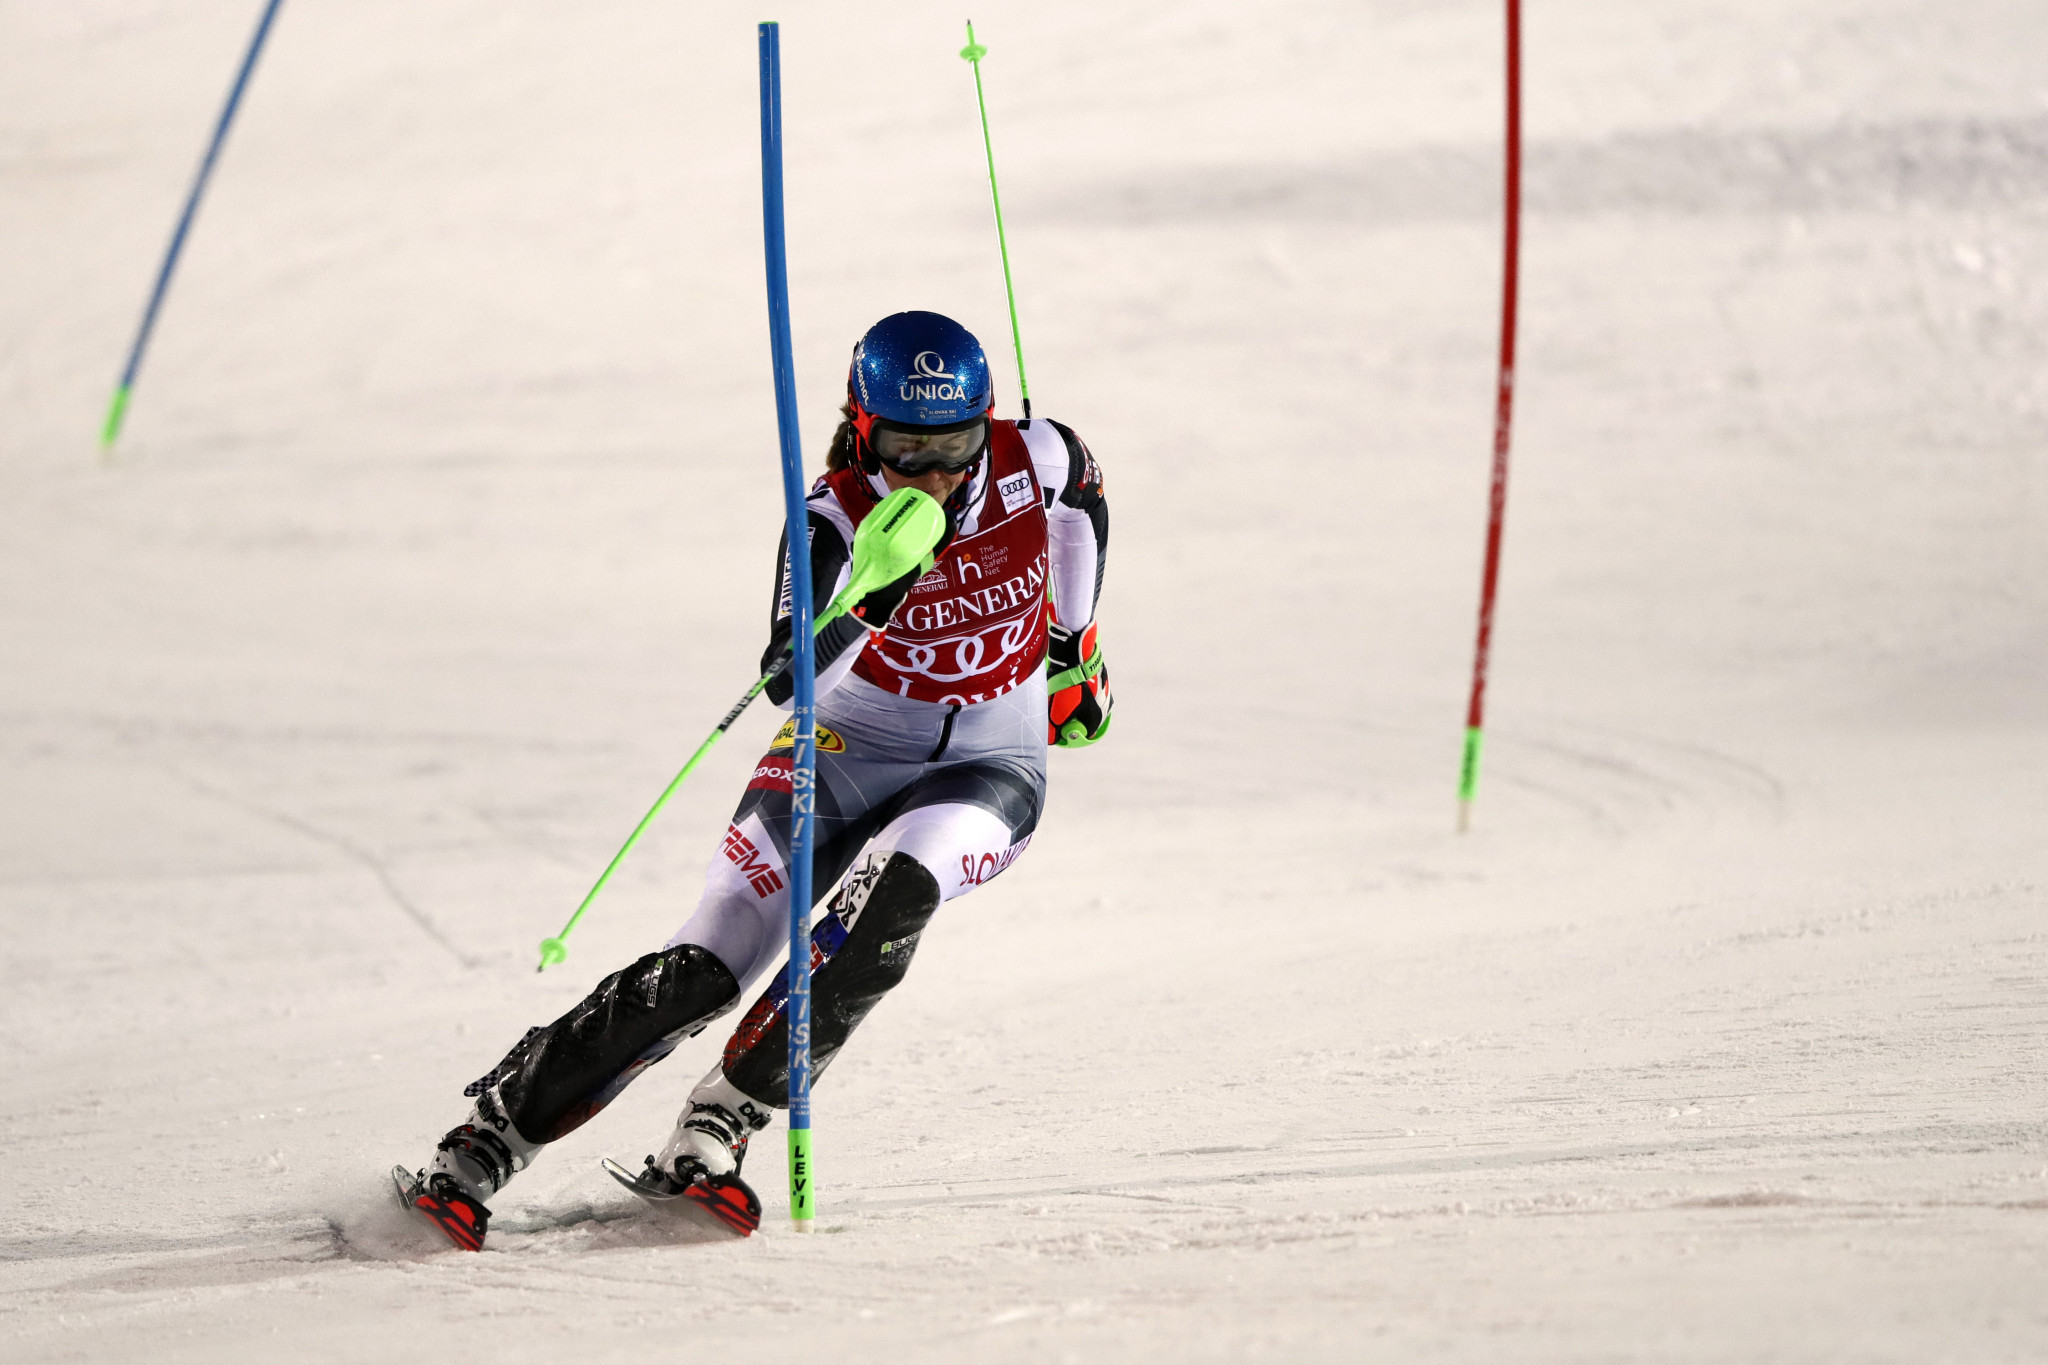 Lech-Zürs returns to FIS Alpine Ski World Cup by hosting parallel giant slalom